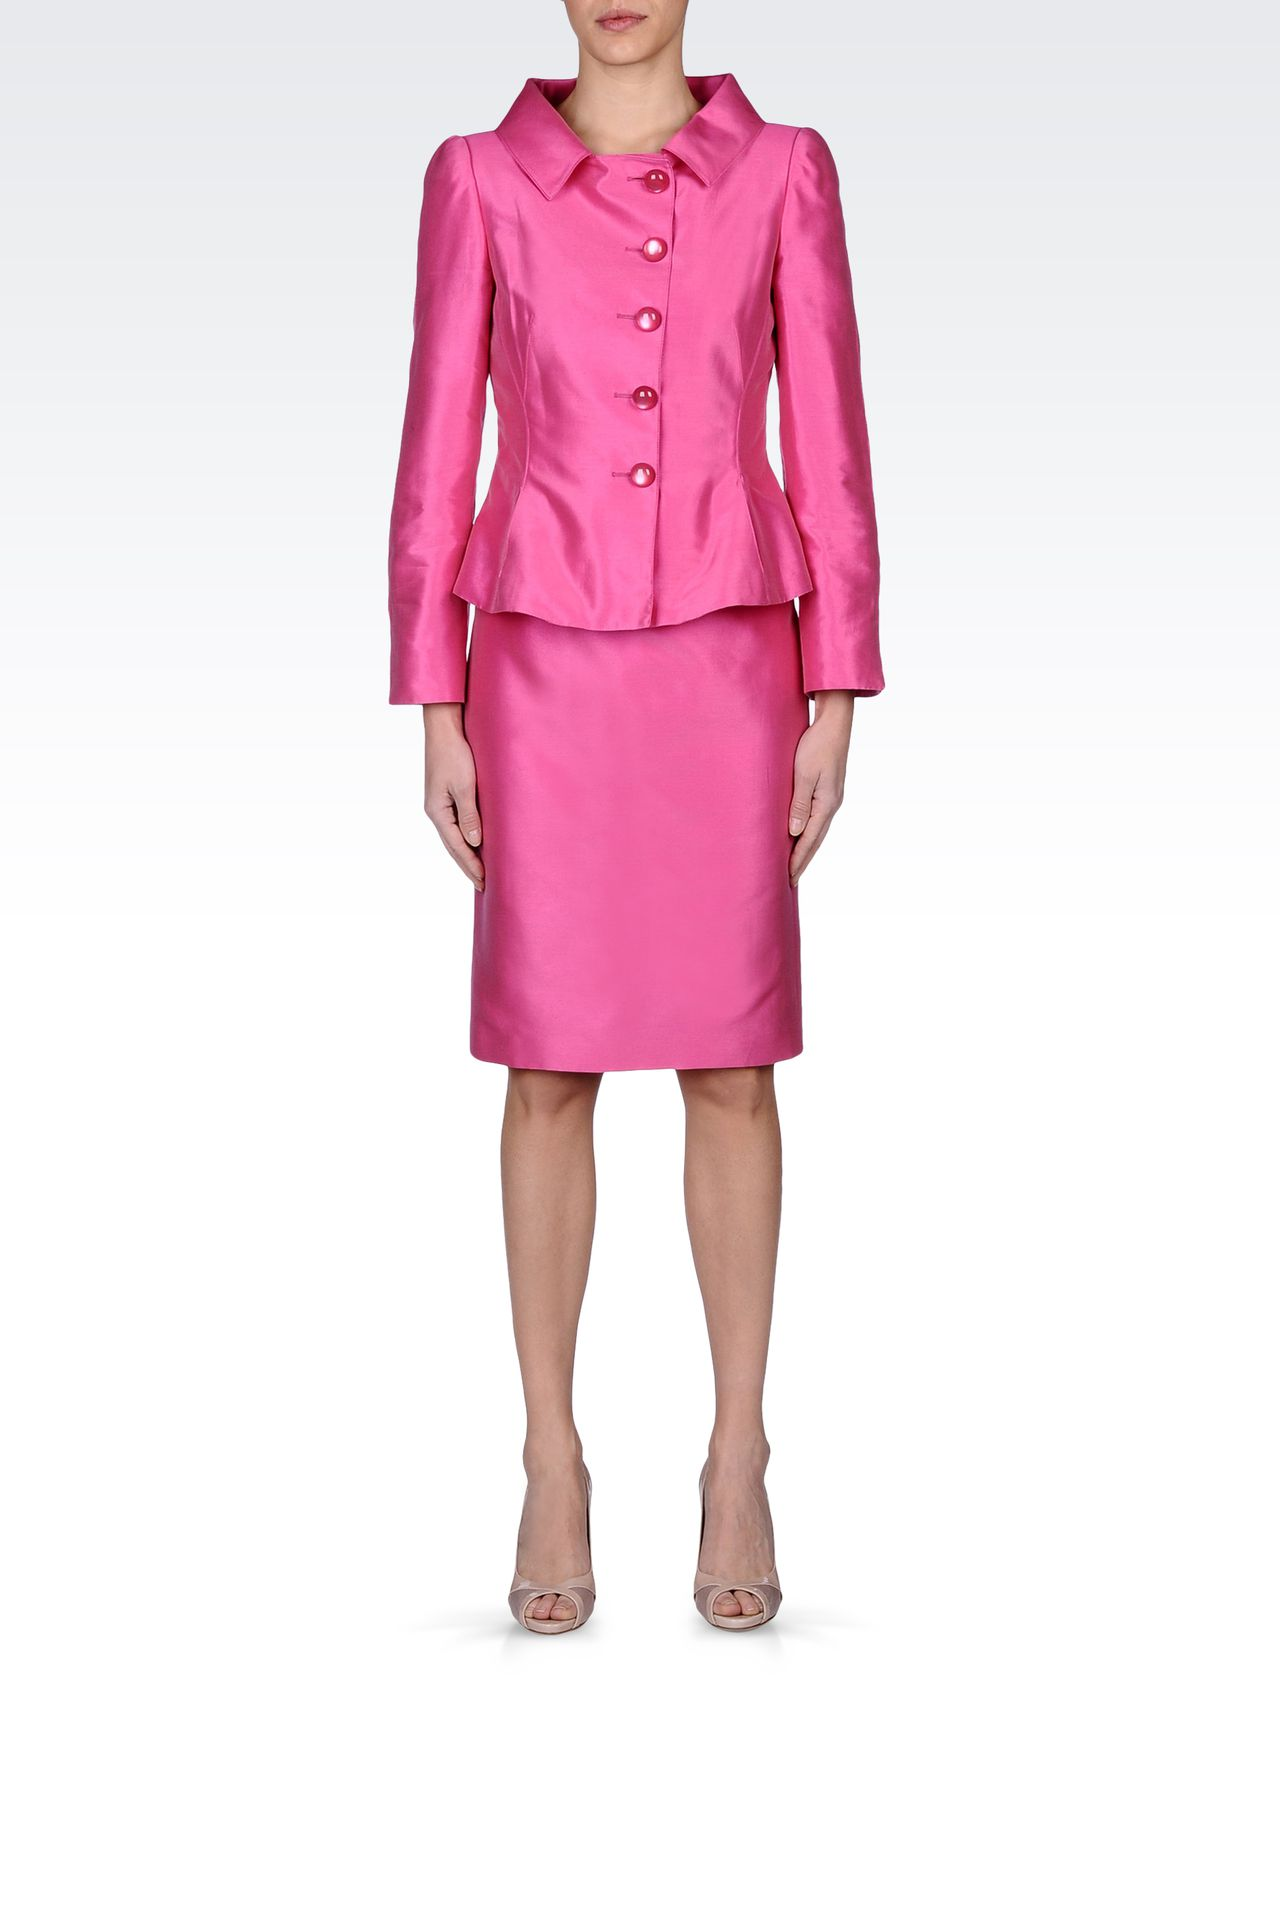 Armani Collezioni Women SUIT IN COTTON AND SILK - Armani.com